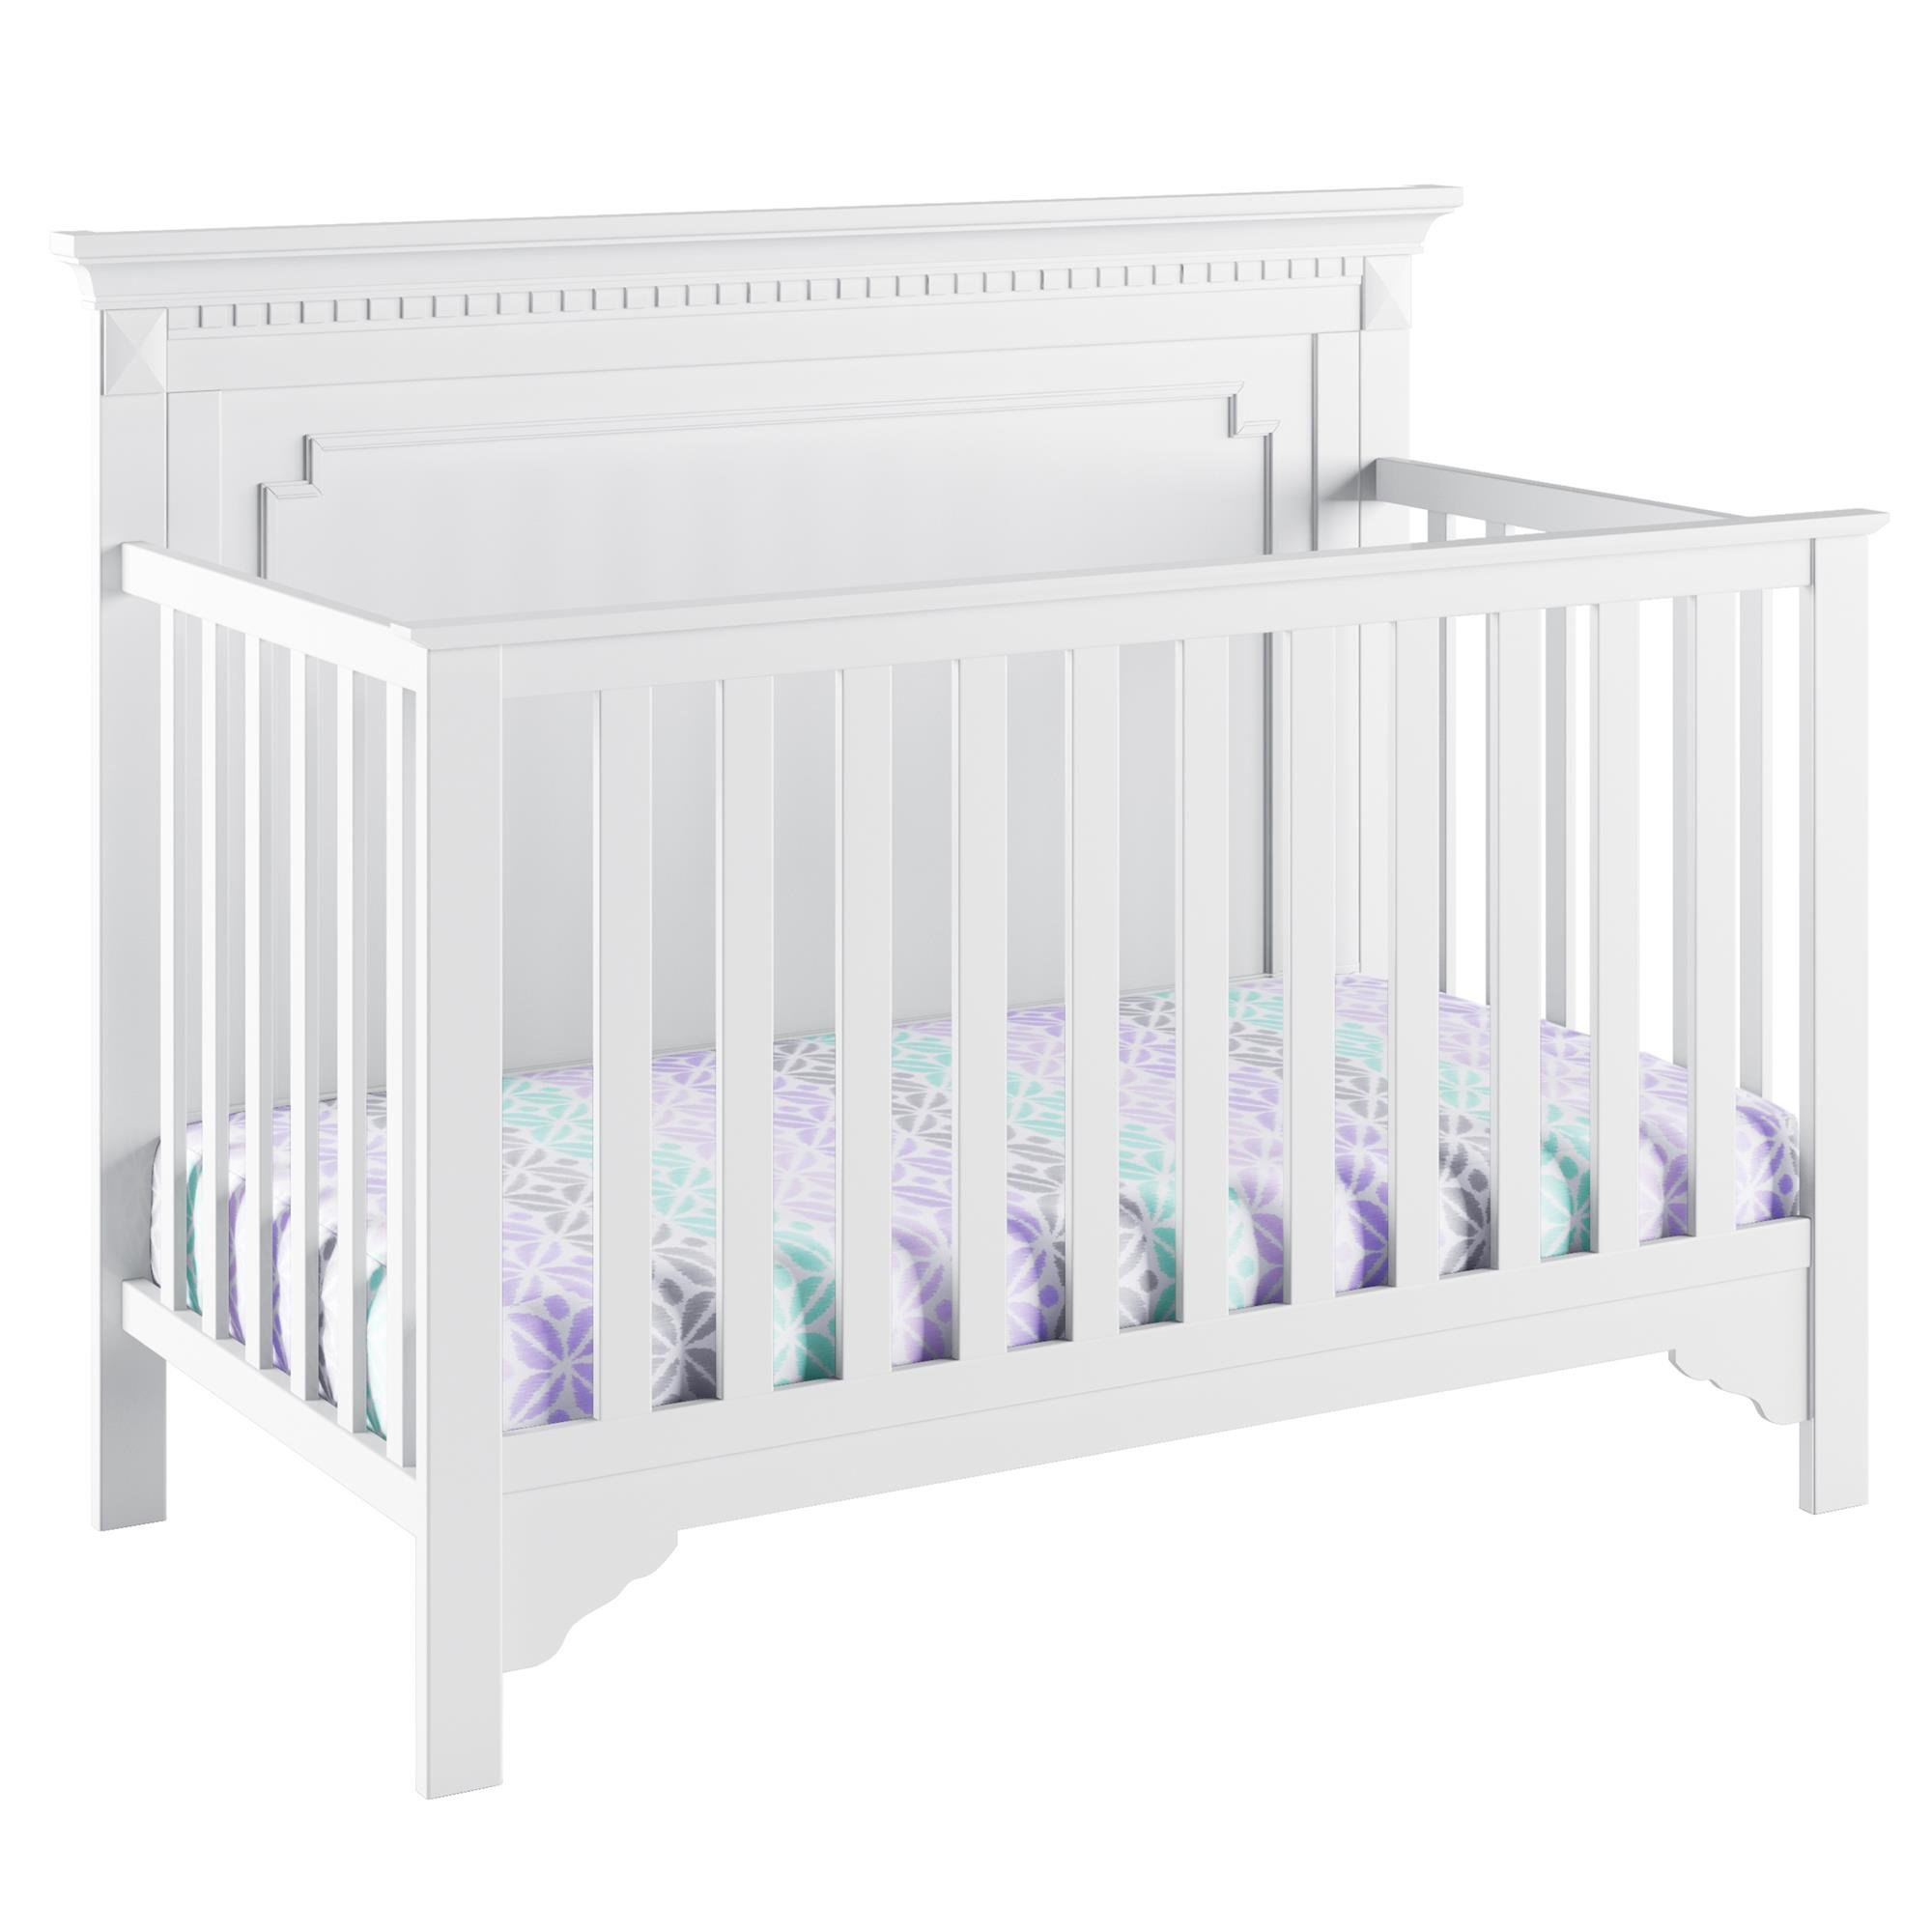 Full Size Conversion Kit Bed Rails for Baby Relax Edgemont, Miles & Rivers Cribs by Dorel Living - White by CC KITS (Image #3)